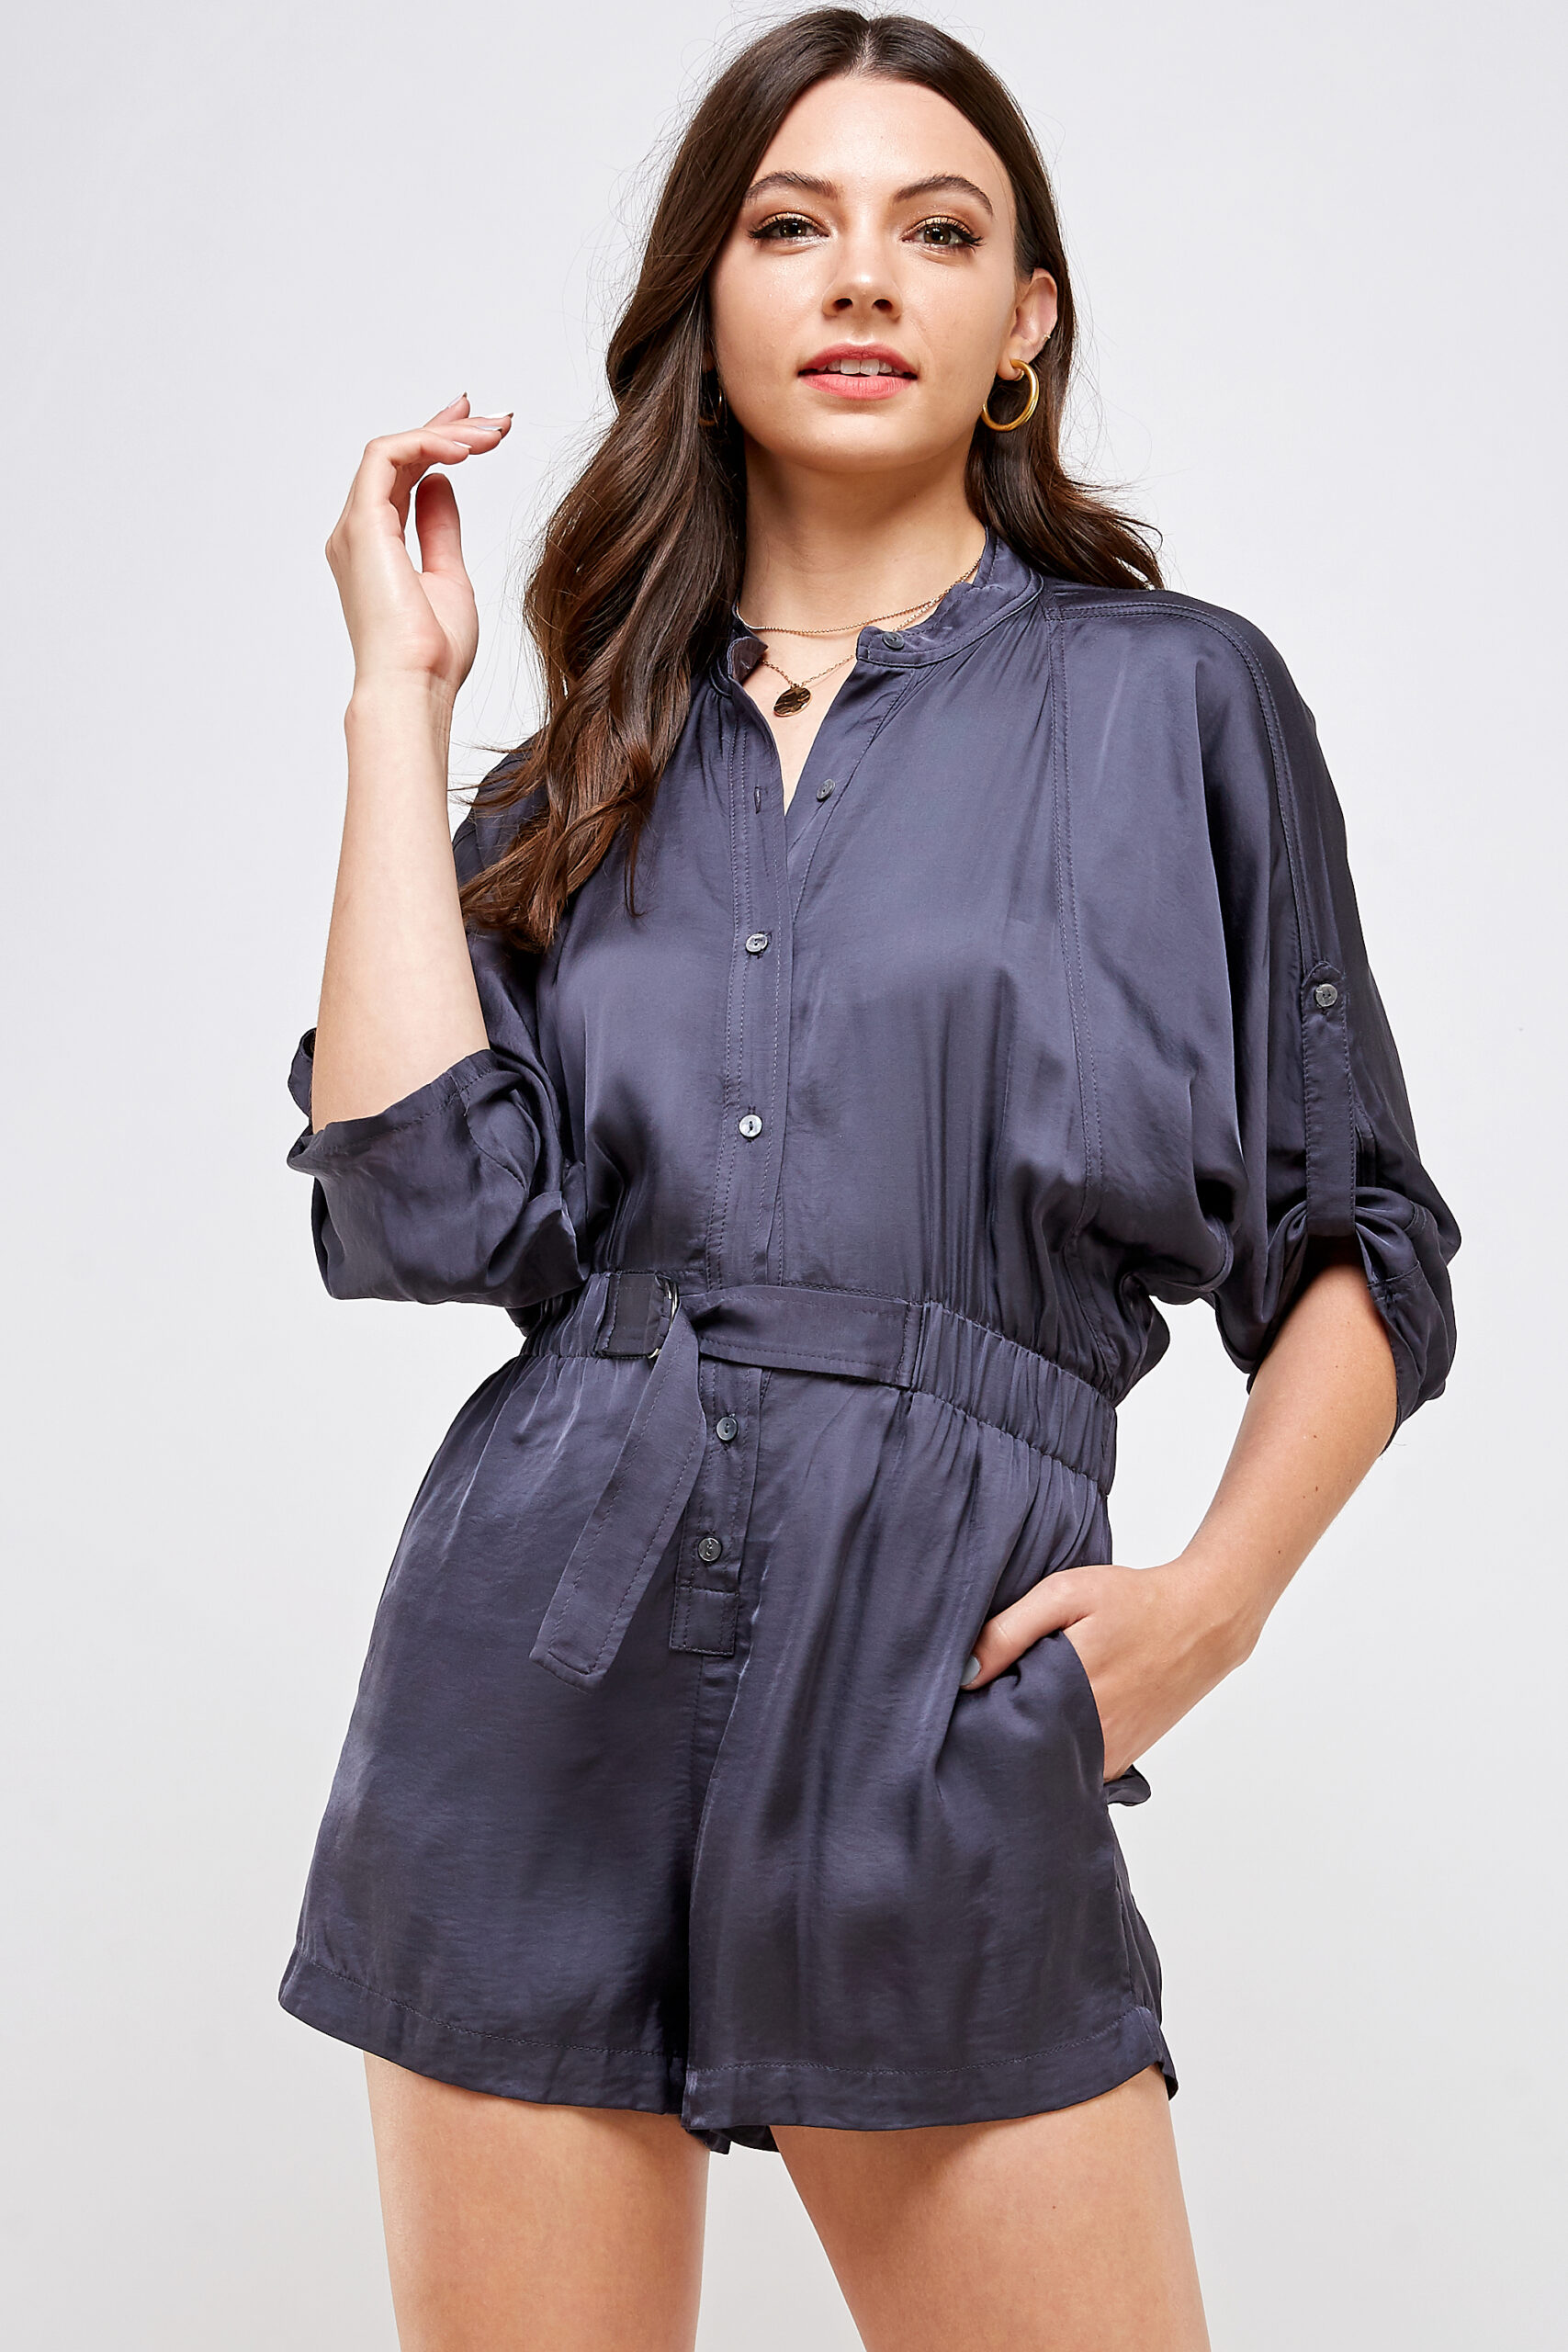 100% Polyester Belted Romper Roll Up Sleeves Button Up Front View Medium Third